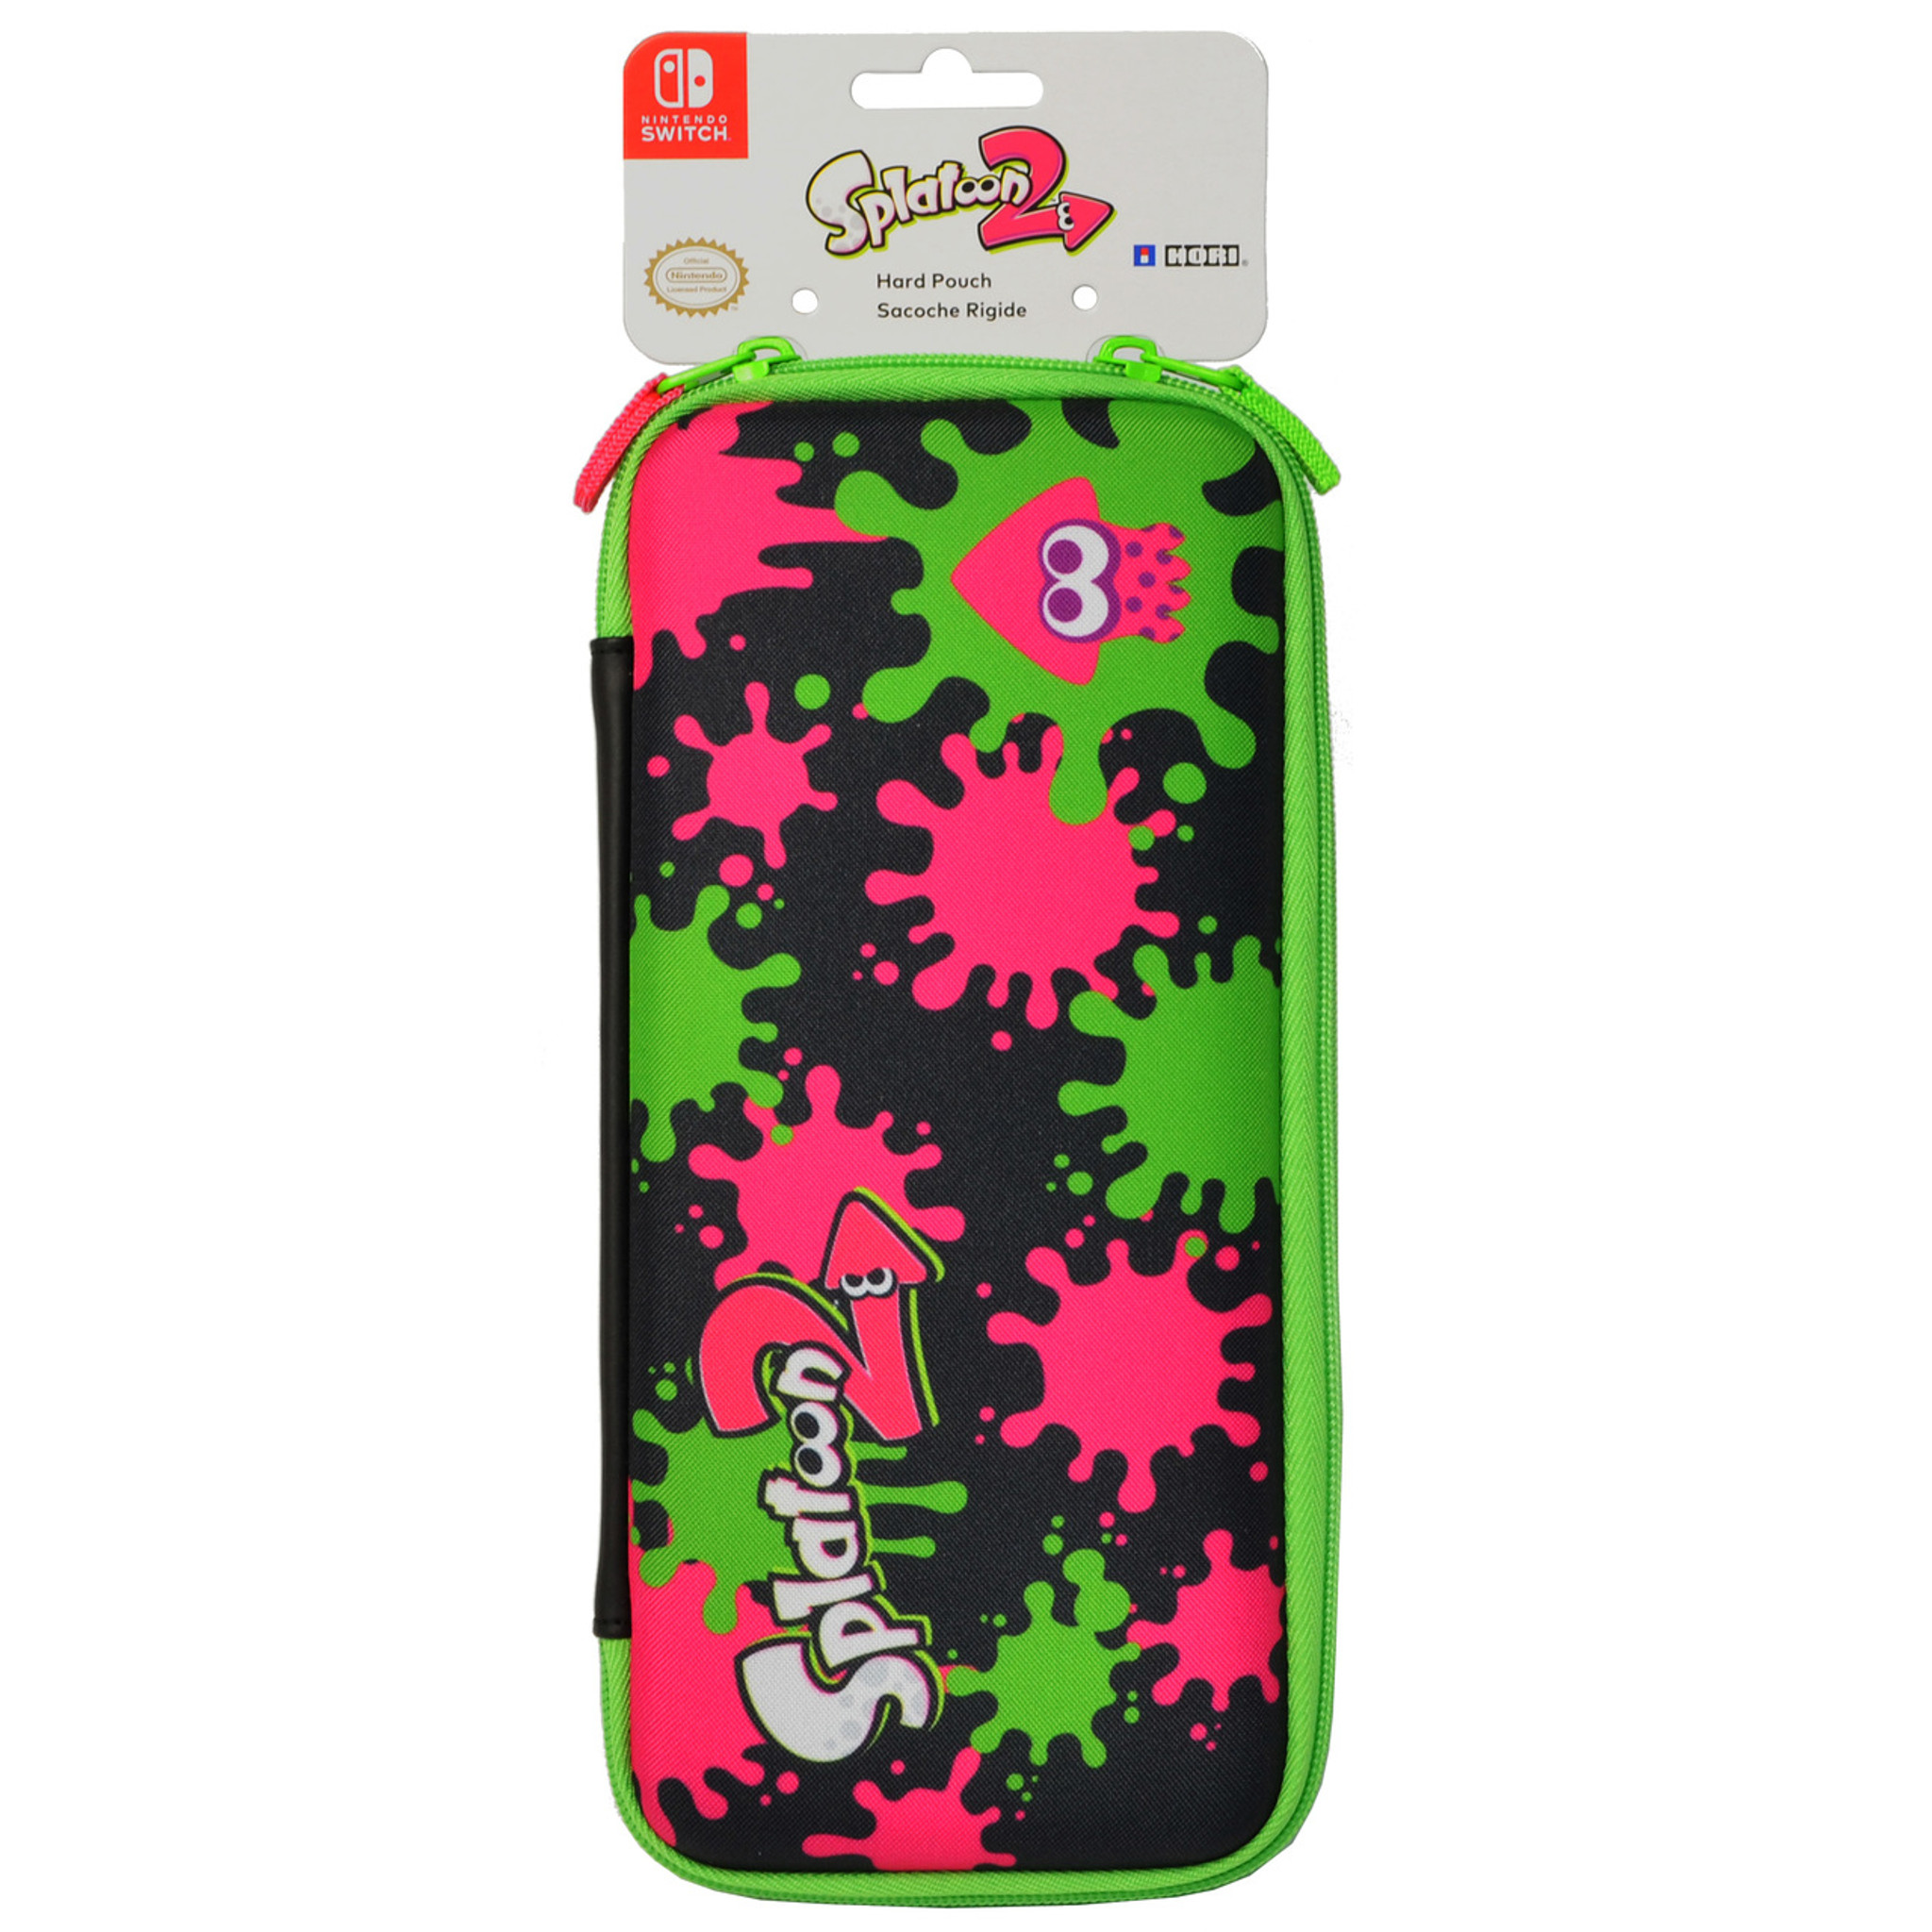 Splatoon 2 Hard Pouch for Nintendo Switch